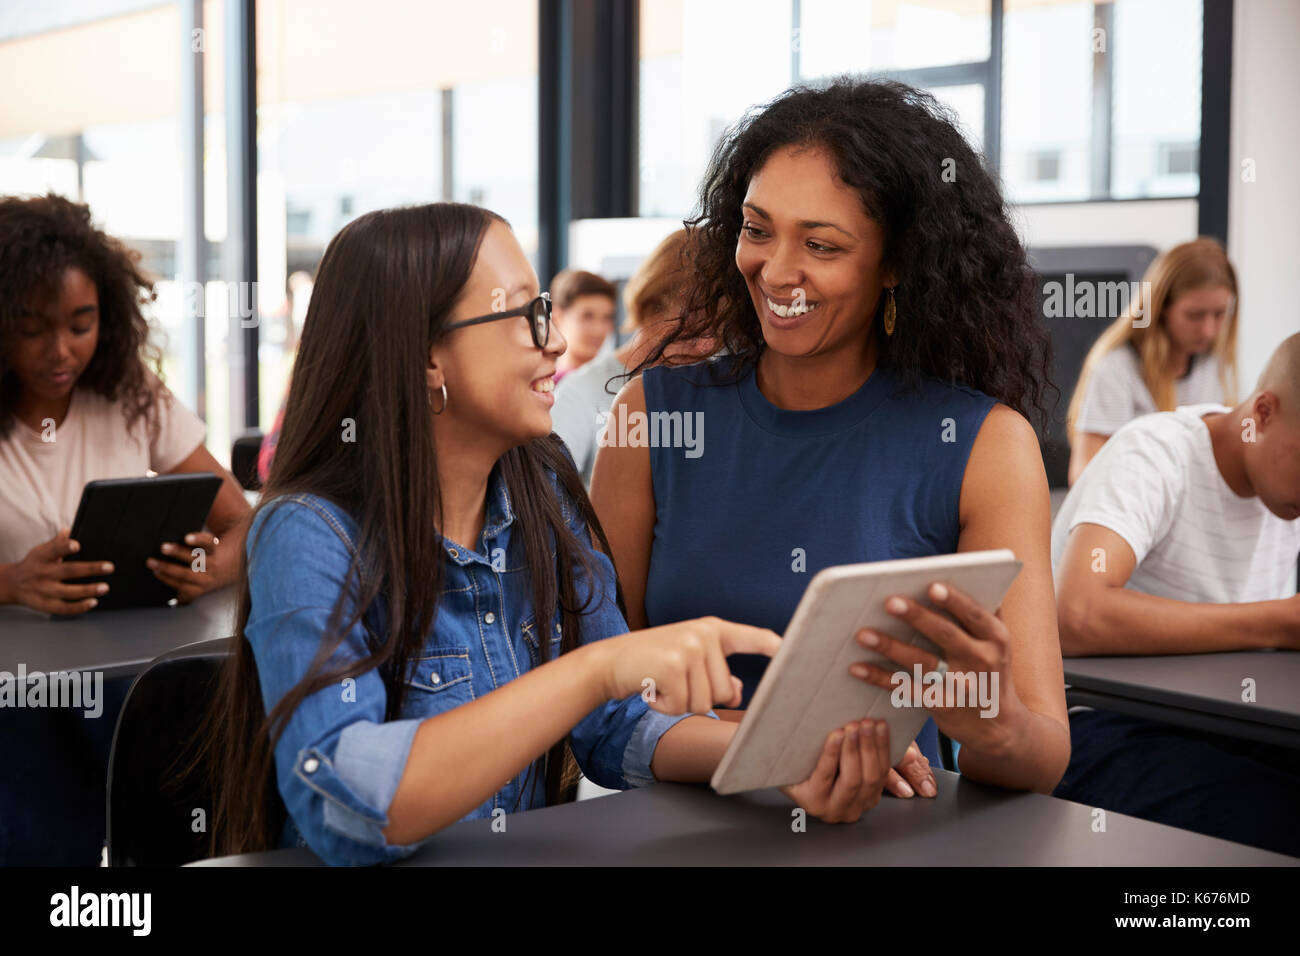 Aider les enseignants teenage schoolgirl with tablet computer Photo Stock